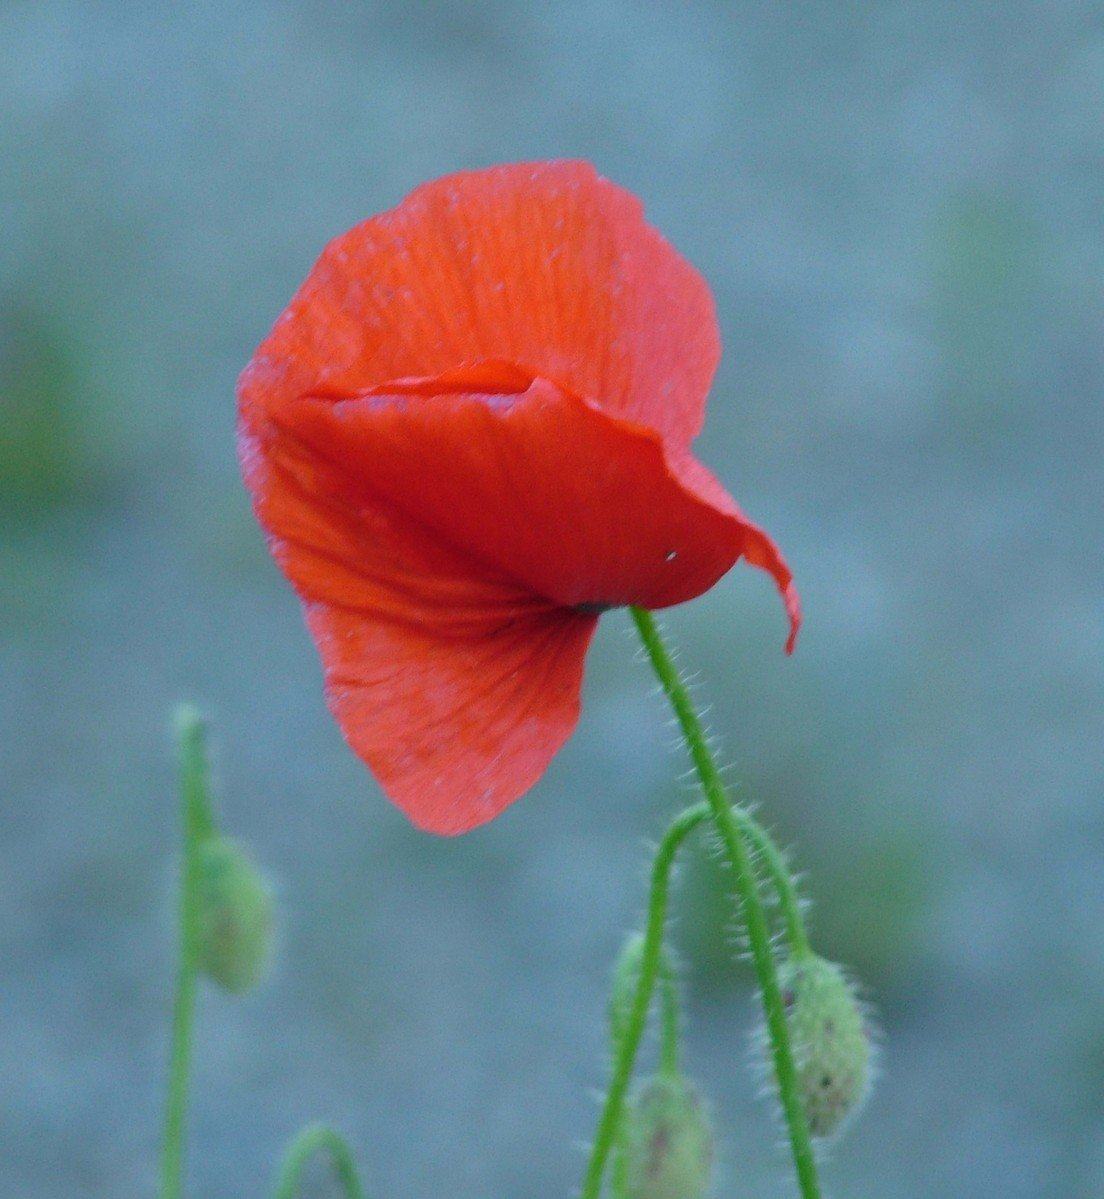 Free Poppy Flower Ii Stock Photo Freeimages